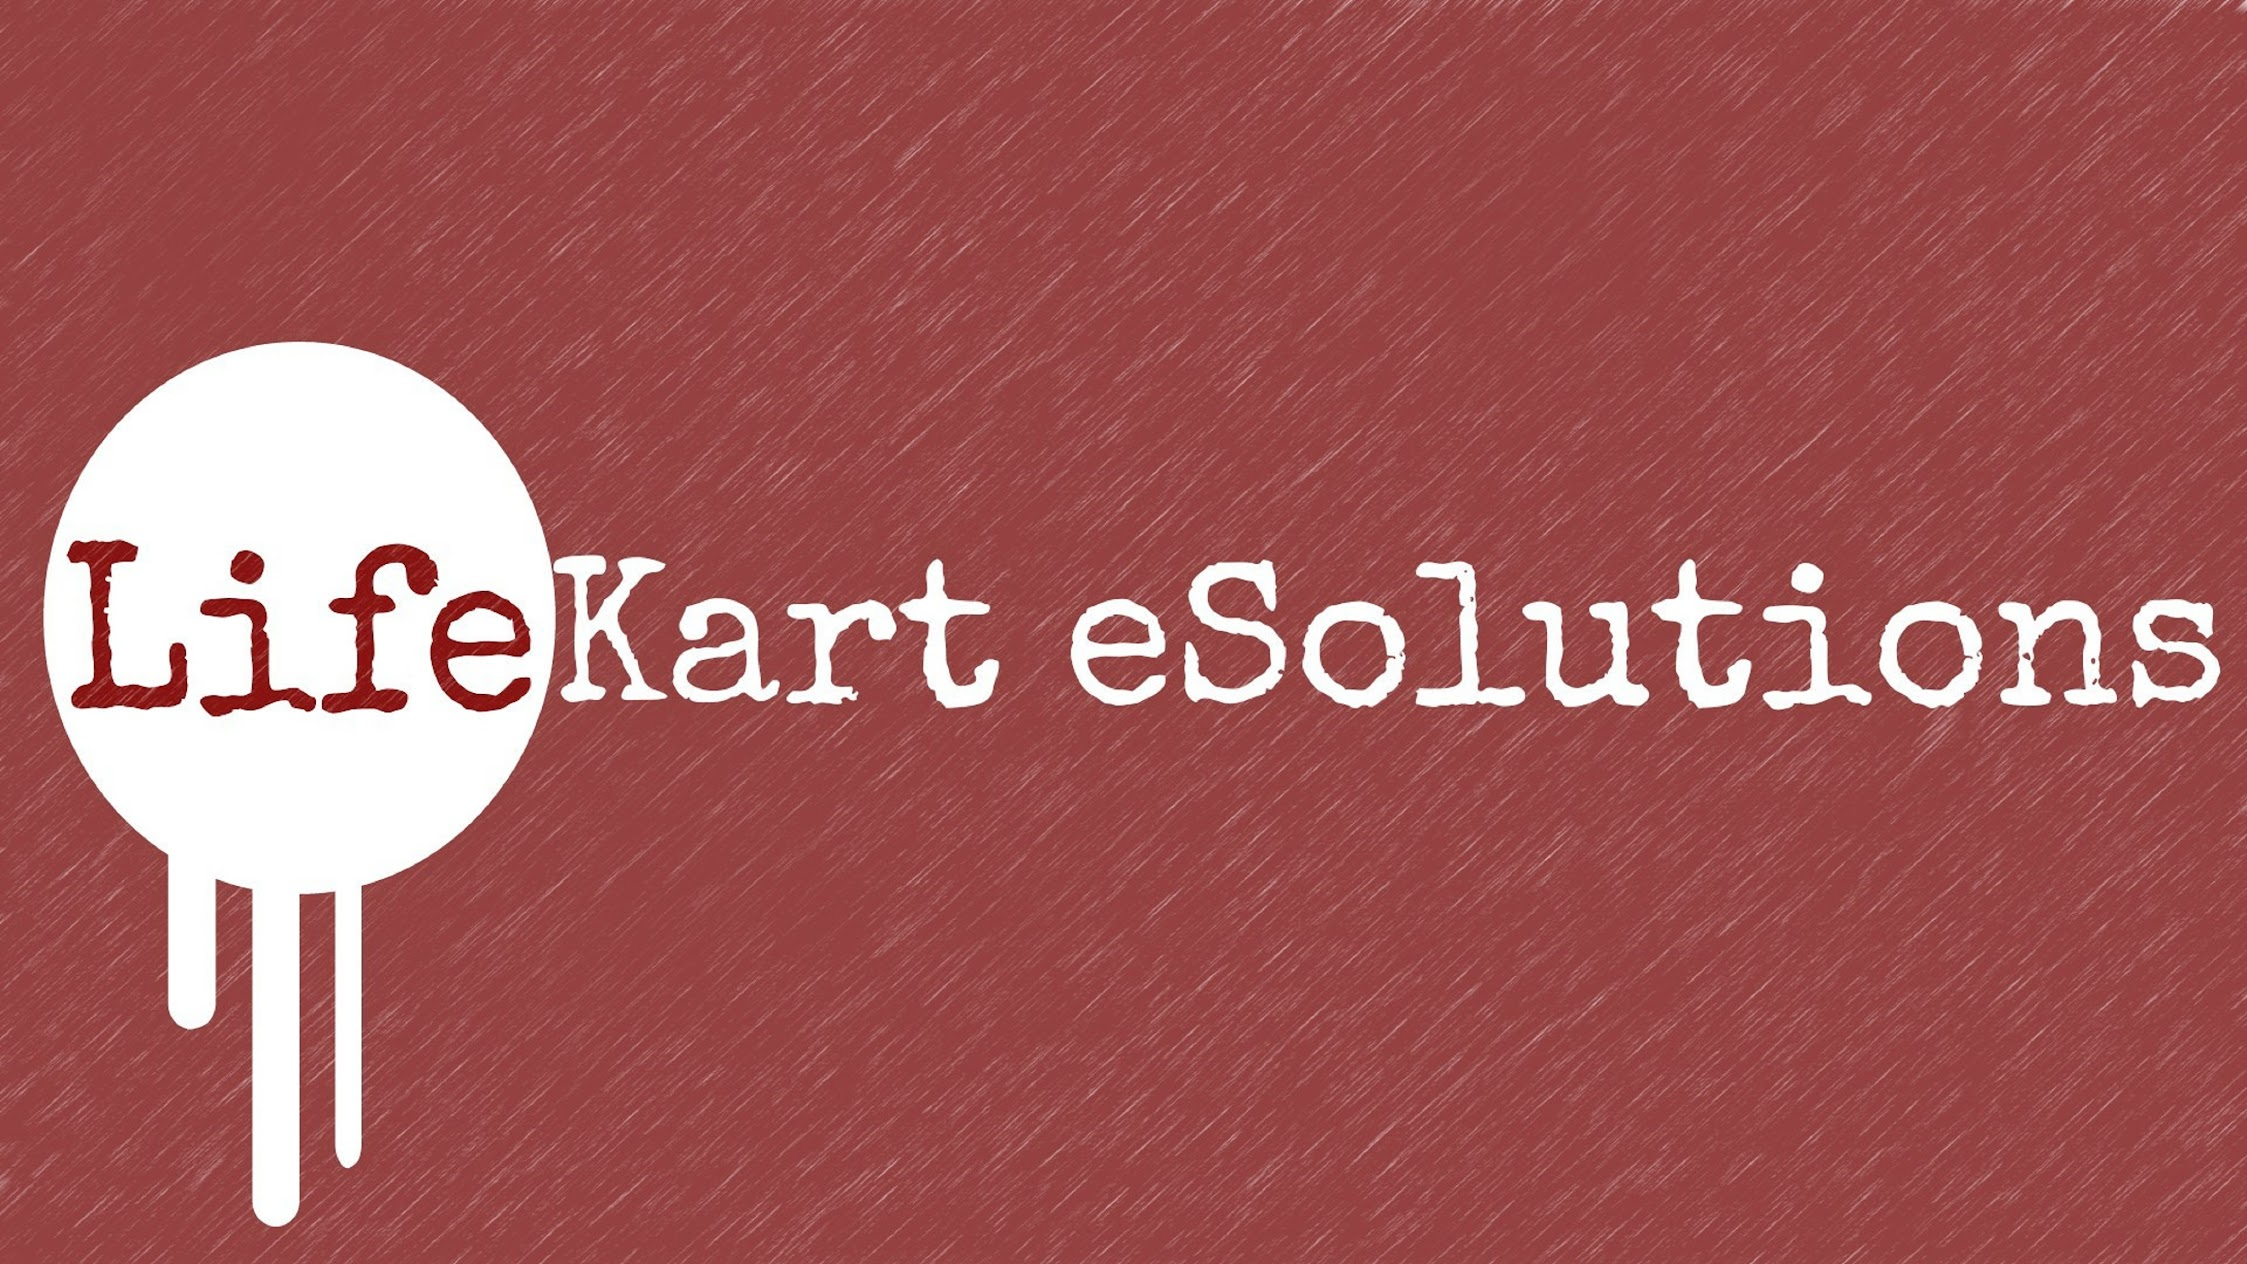 LifeKart eSolutions